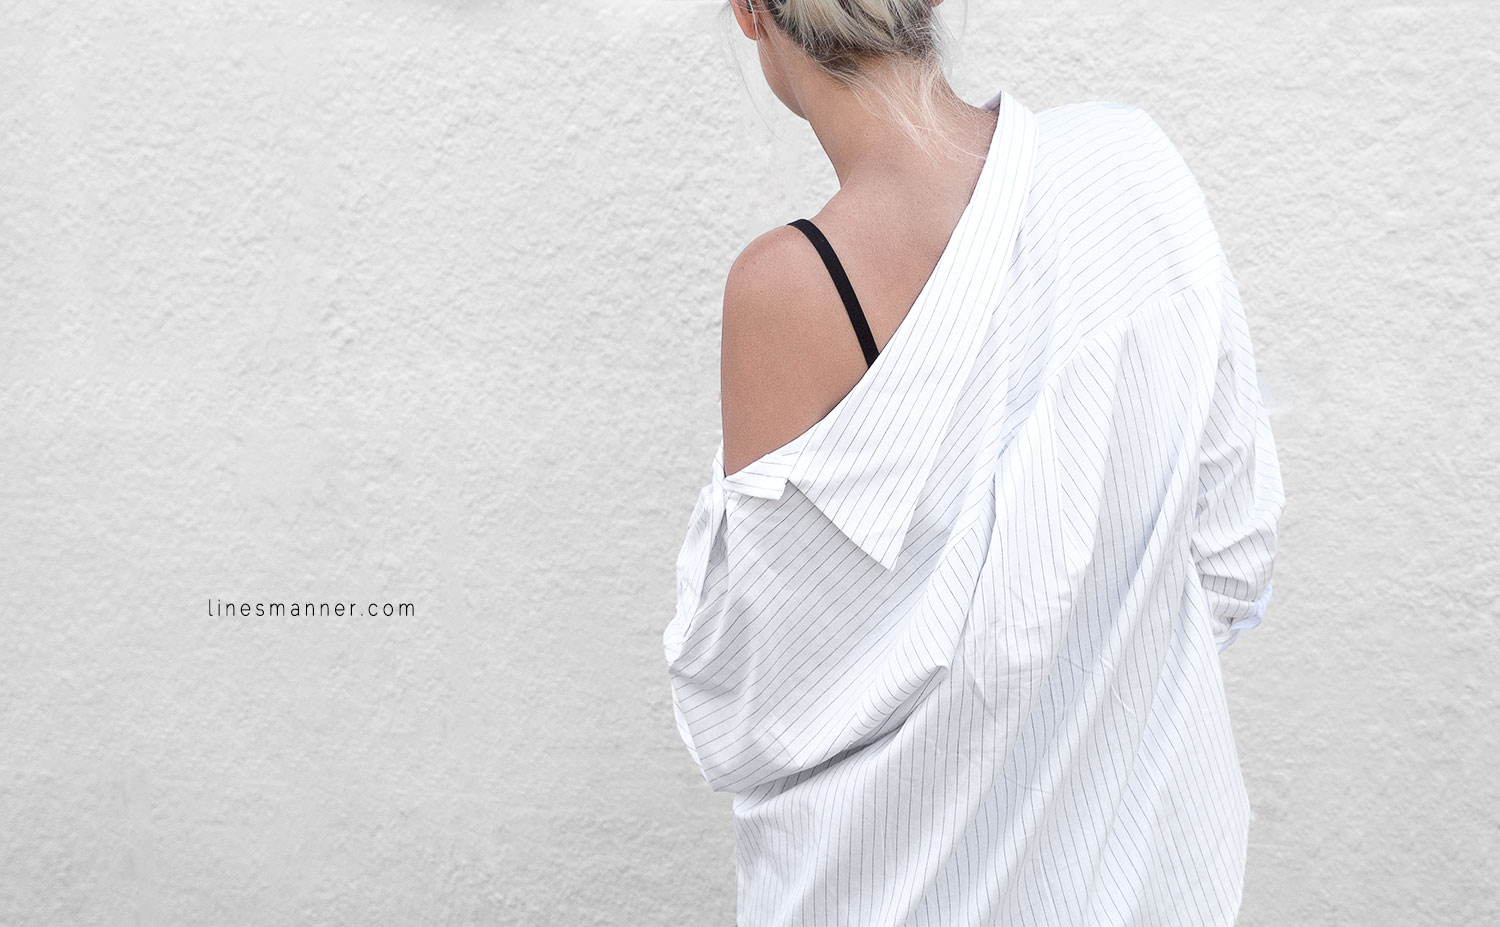 Lines-Manner-Simplicity-Off_shoulder-Monochrome-Noway_Monday-Details-Edgy6Backward-Sleek Statement_piece-Pinstripe-Business-Shirt-Minimal-Essentials-Outfit-Fashion-Minimal_fashion-Slides-Everlane-5